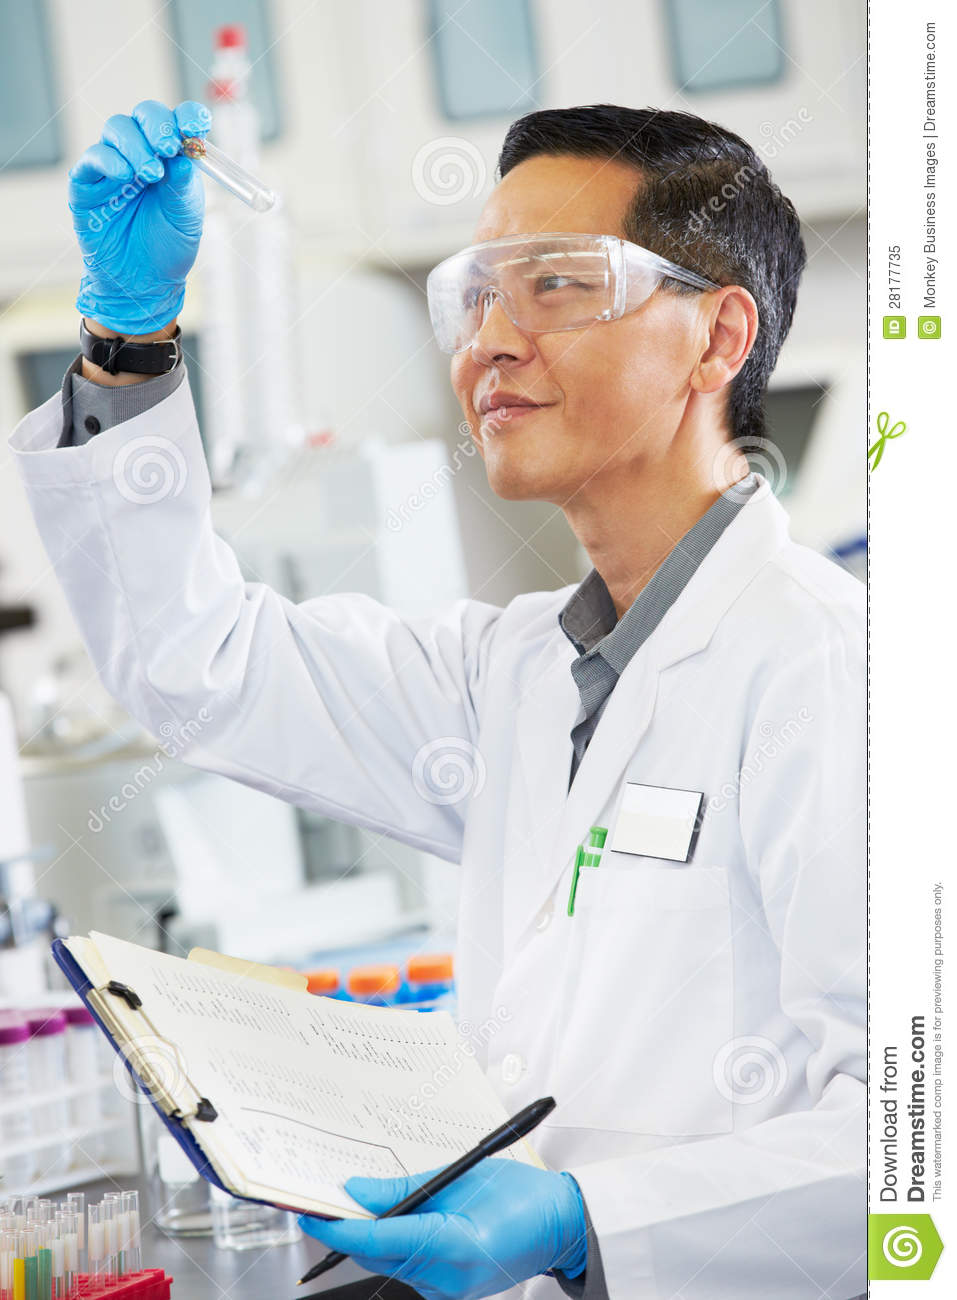 scientist working male laboratory tube test holding dreamstime royalty